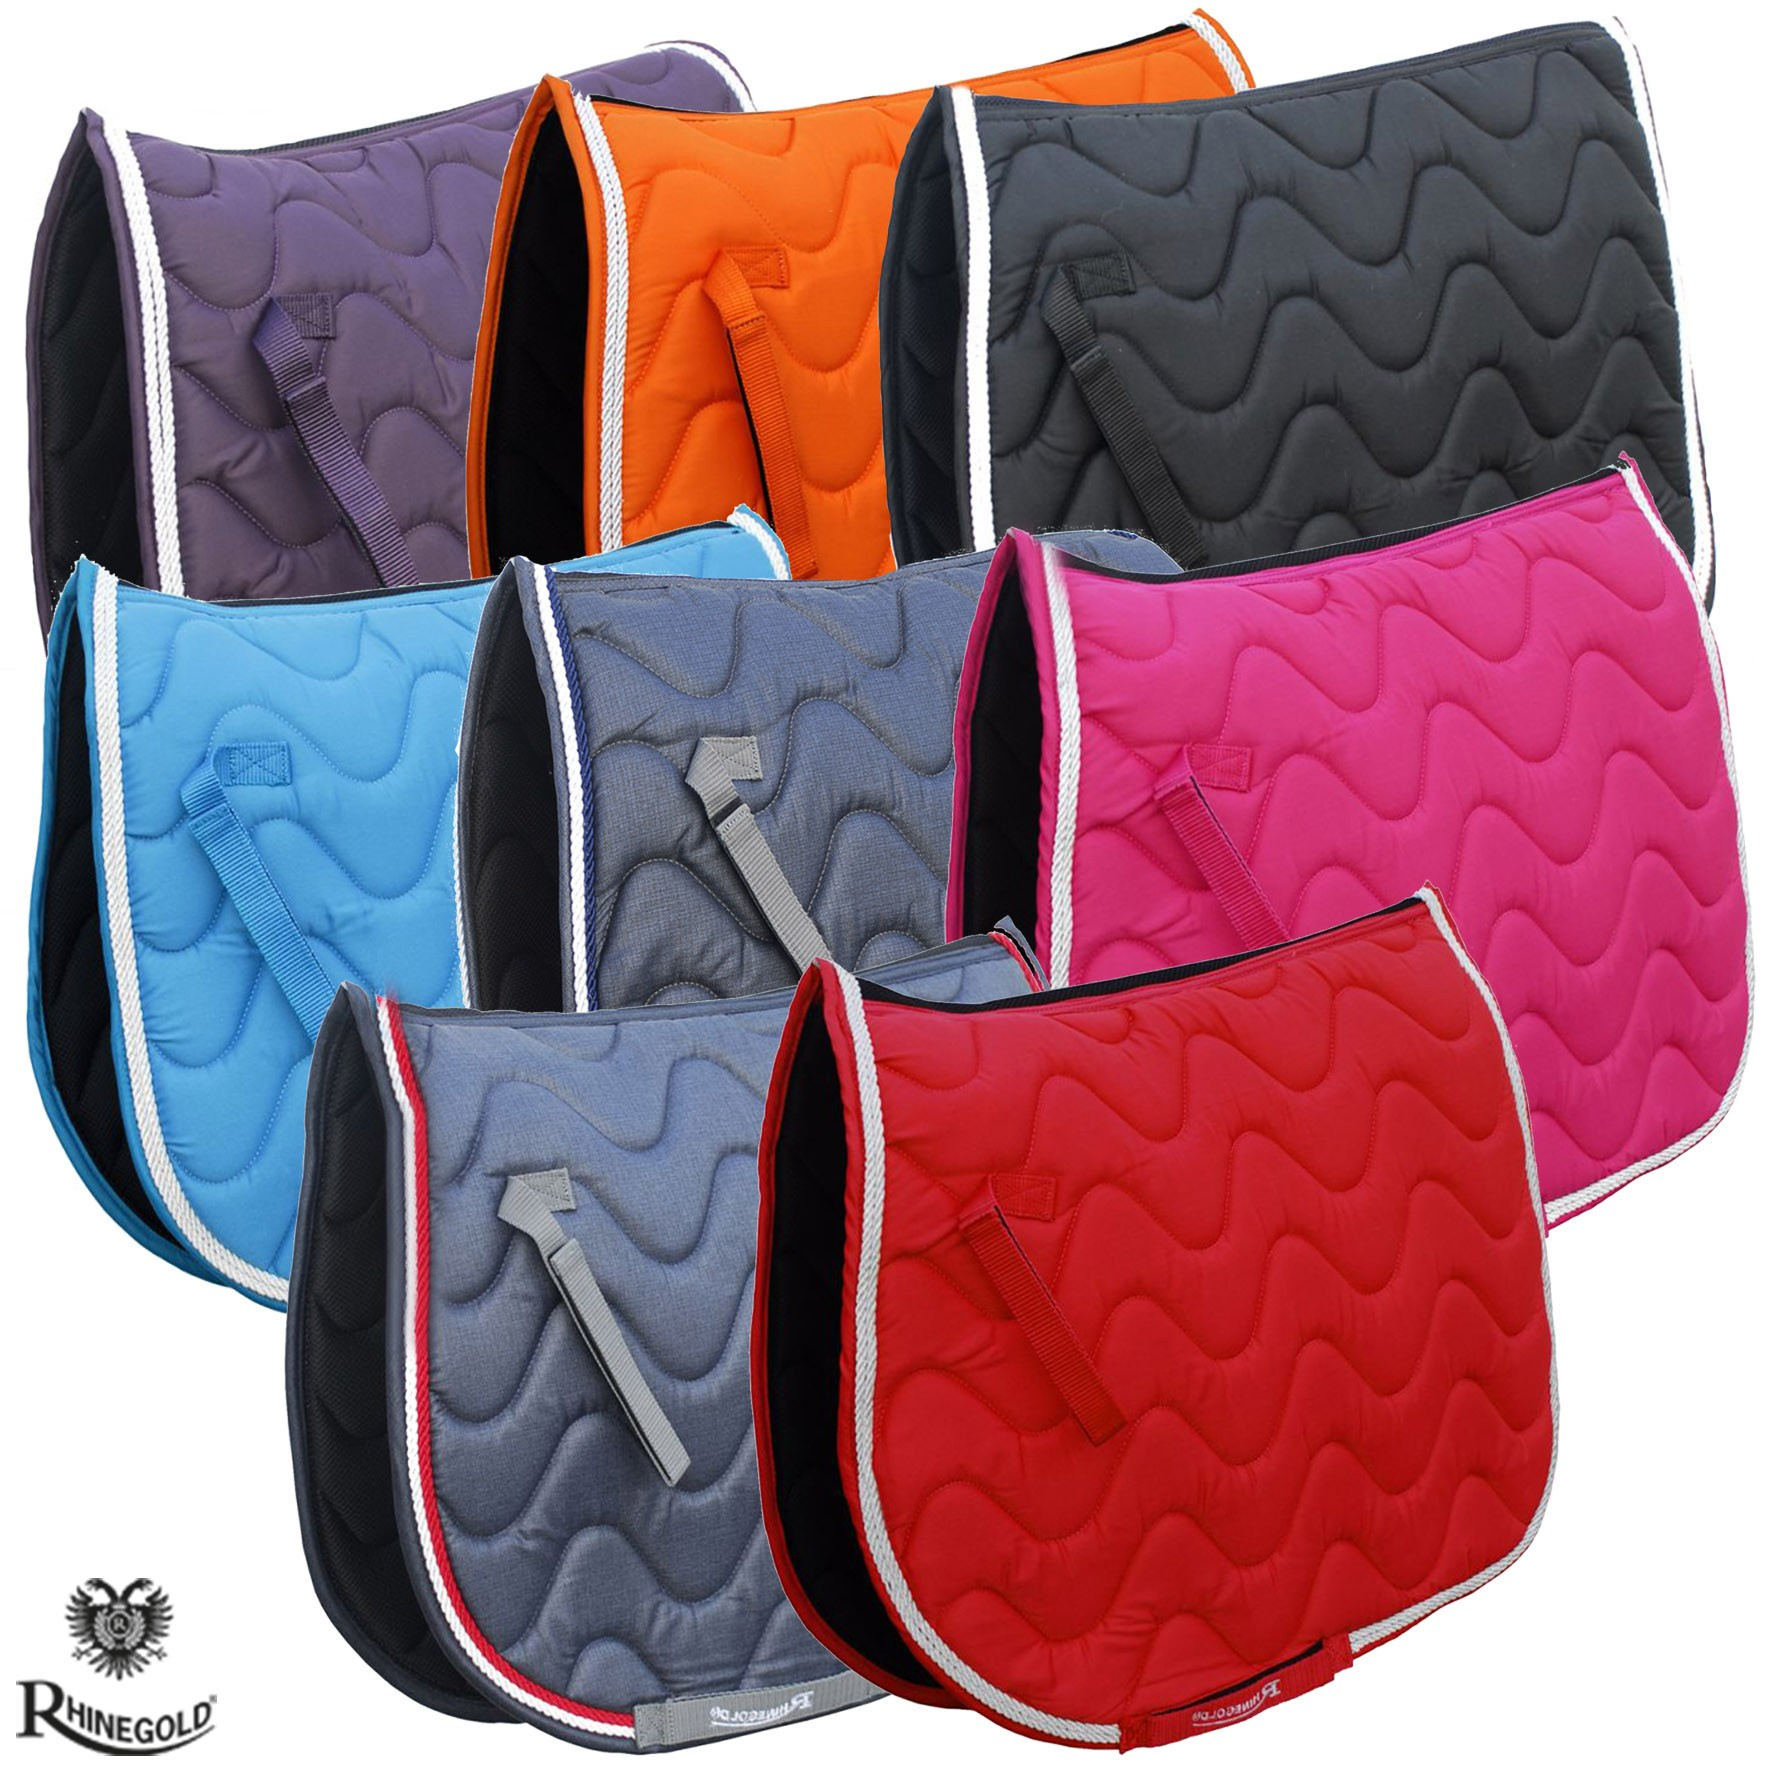 Rhinegold Elite Wave Saddlepad